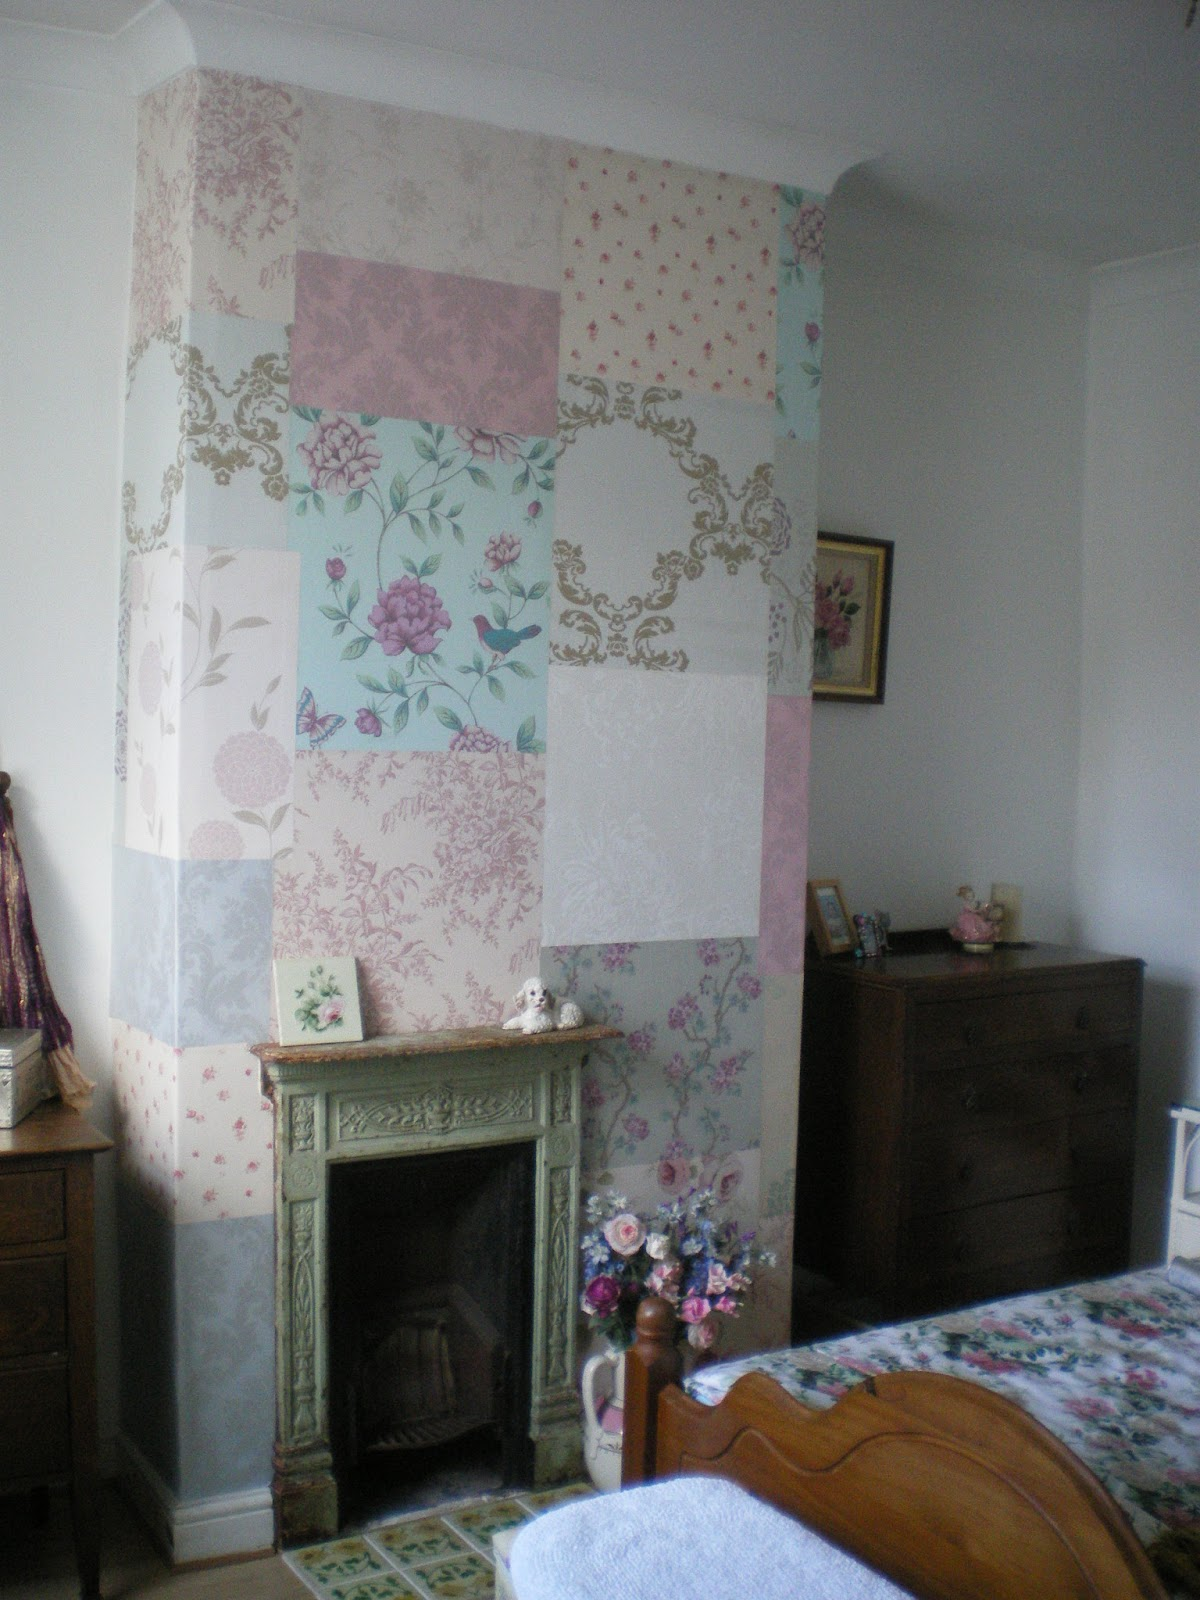 trololo blogg: Wallpaper Alcoves Or Chimney Breast